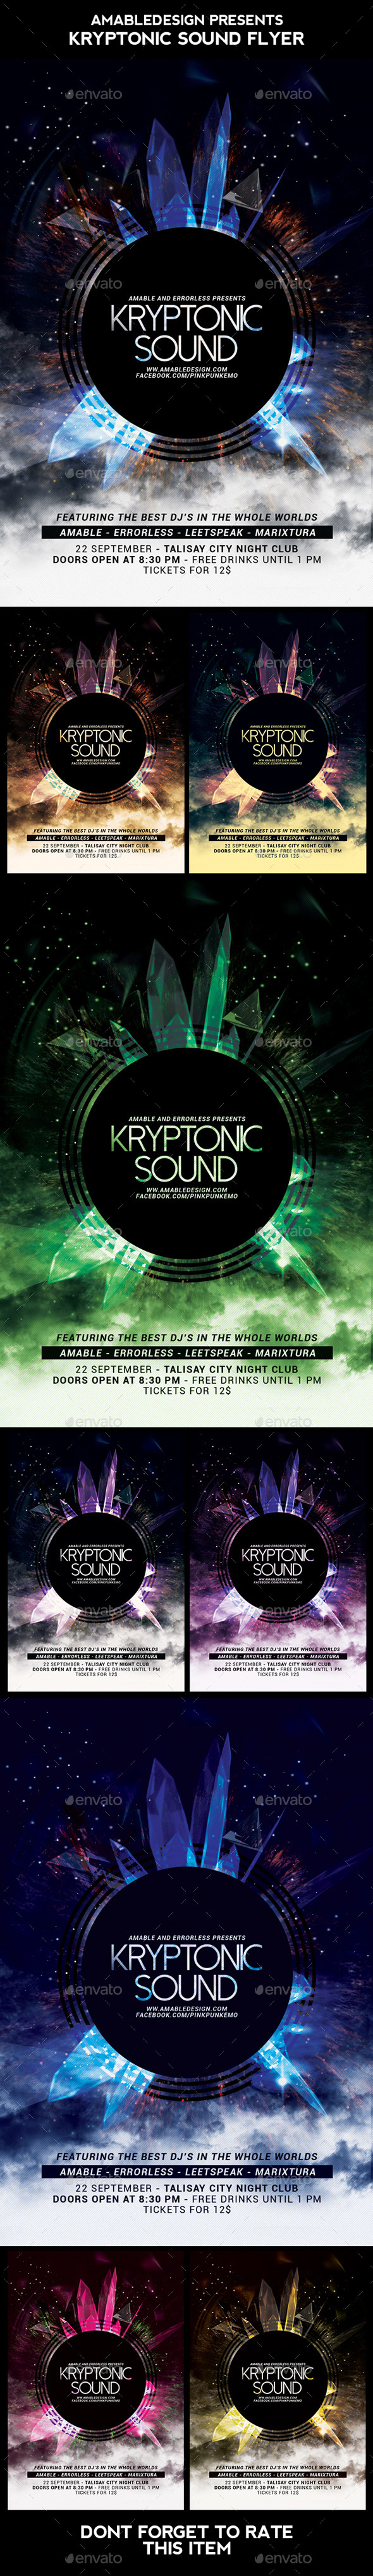 Kryptonic Sound Flyer - Clubs & Parties Events